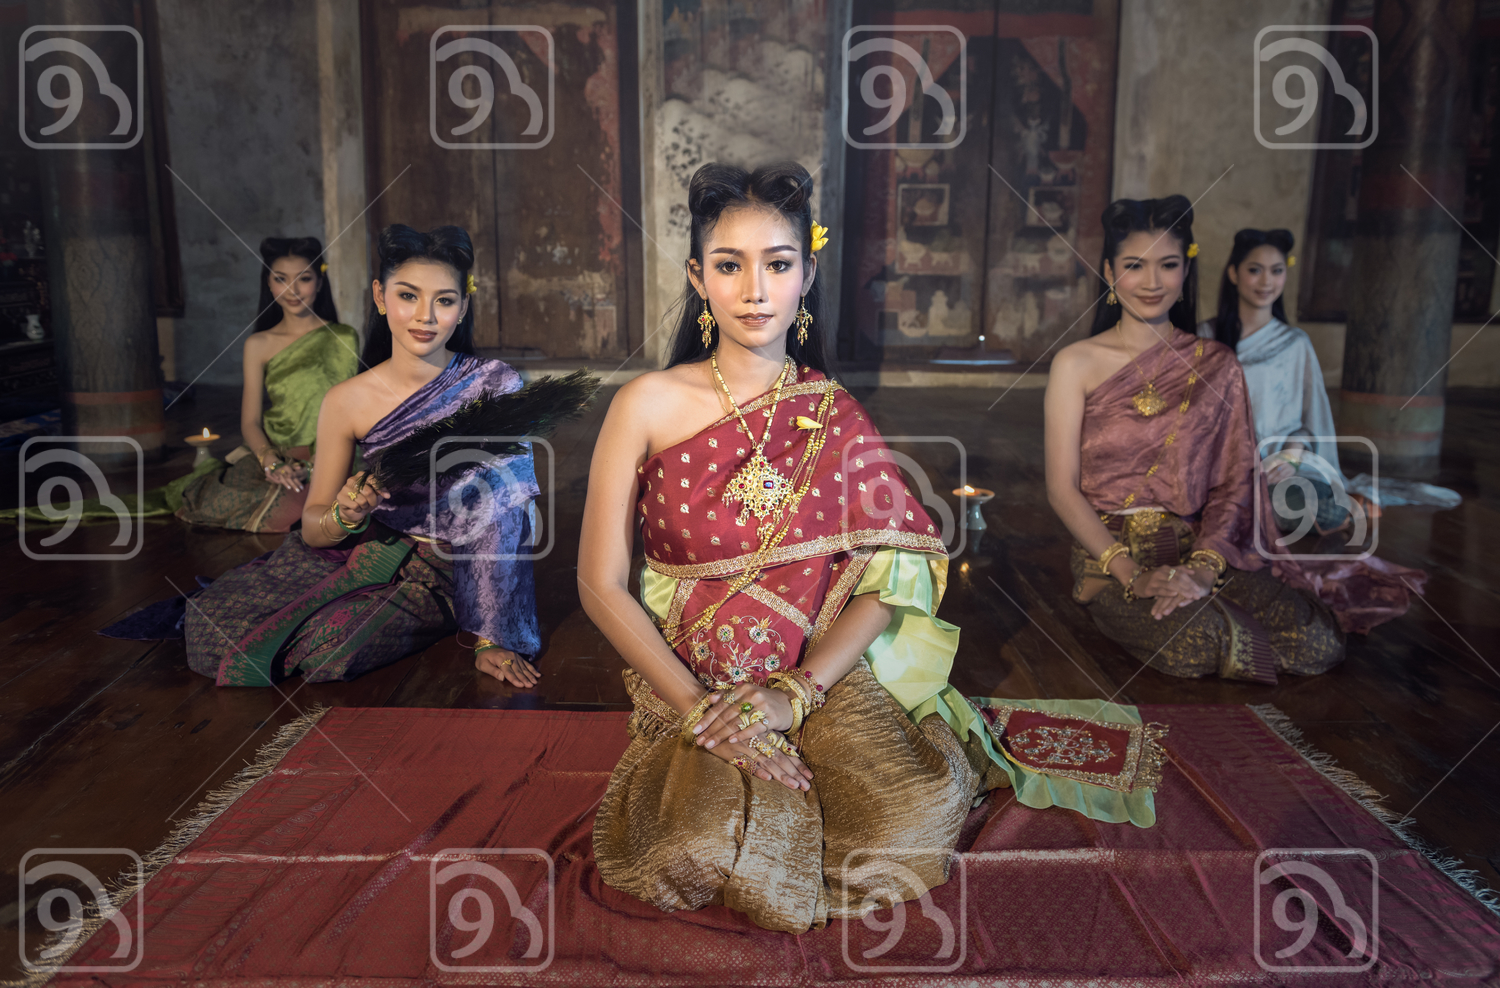 Beautiful Thai women in traditional costume